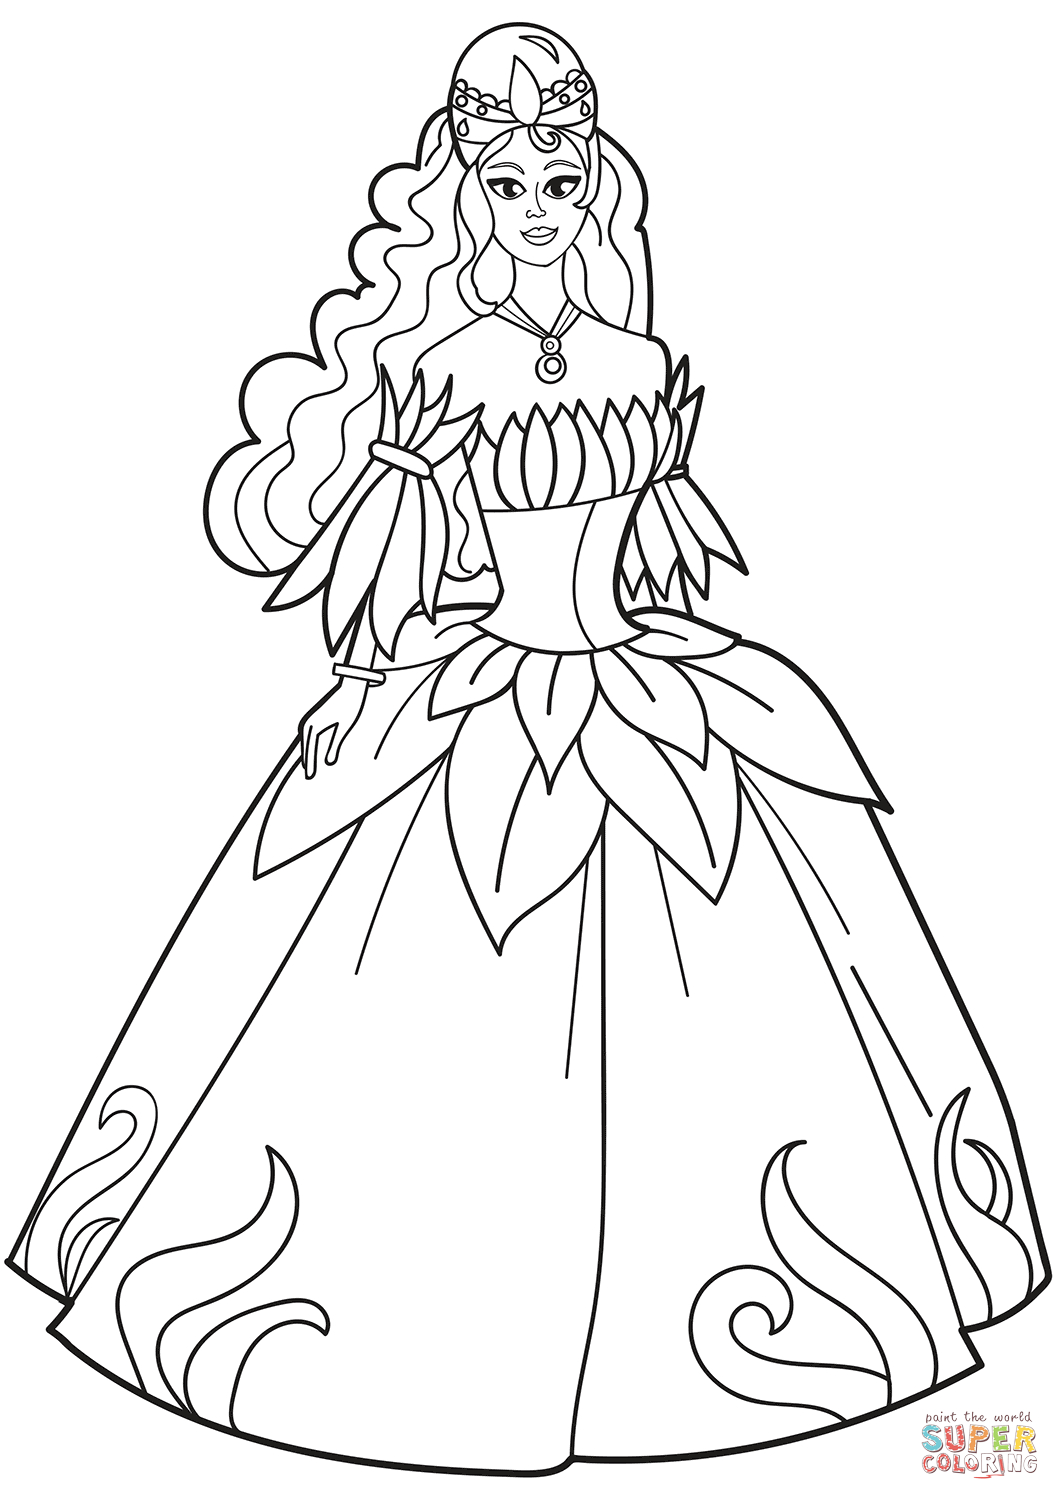 25+ Creative Picture of Dress Coloring Pages